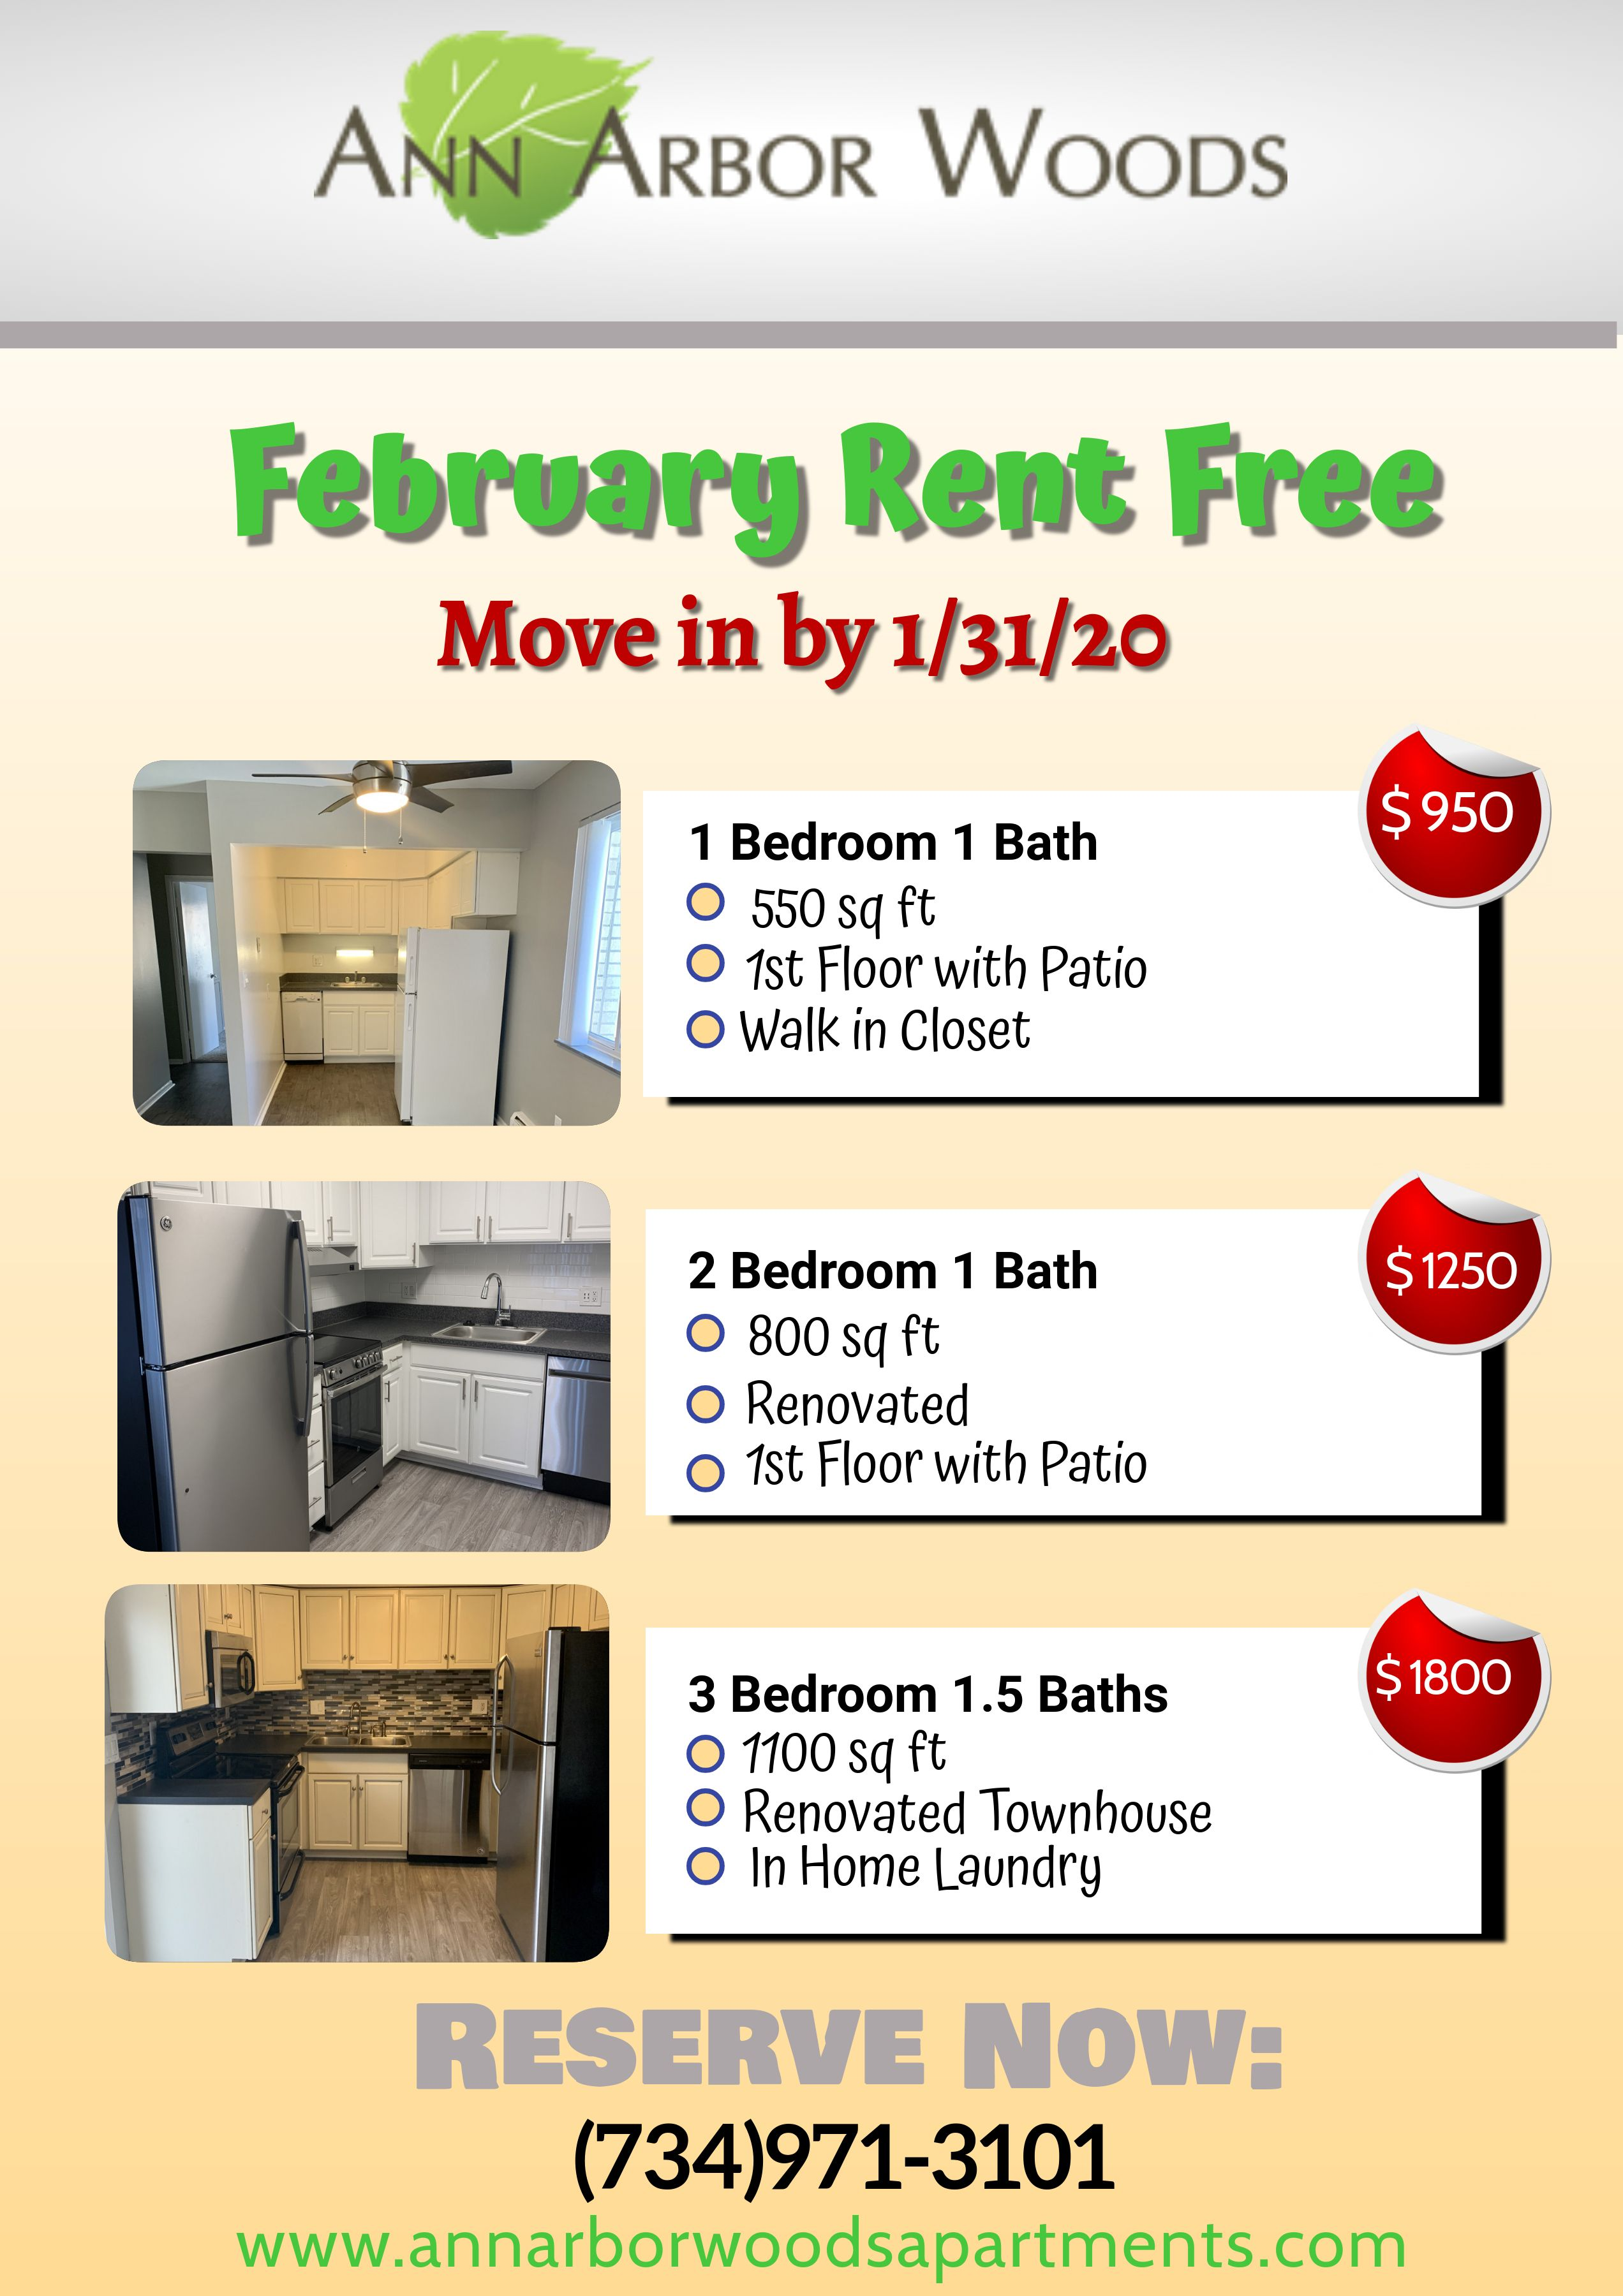 February Rent Free New Homes Free Move Renovations